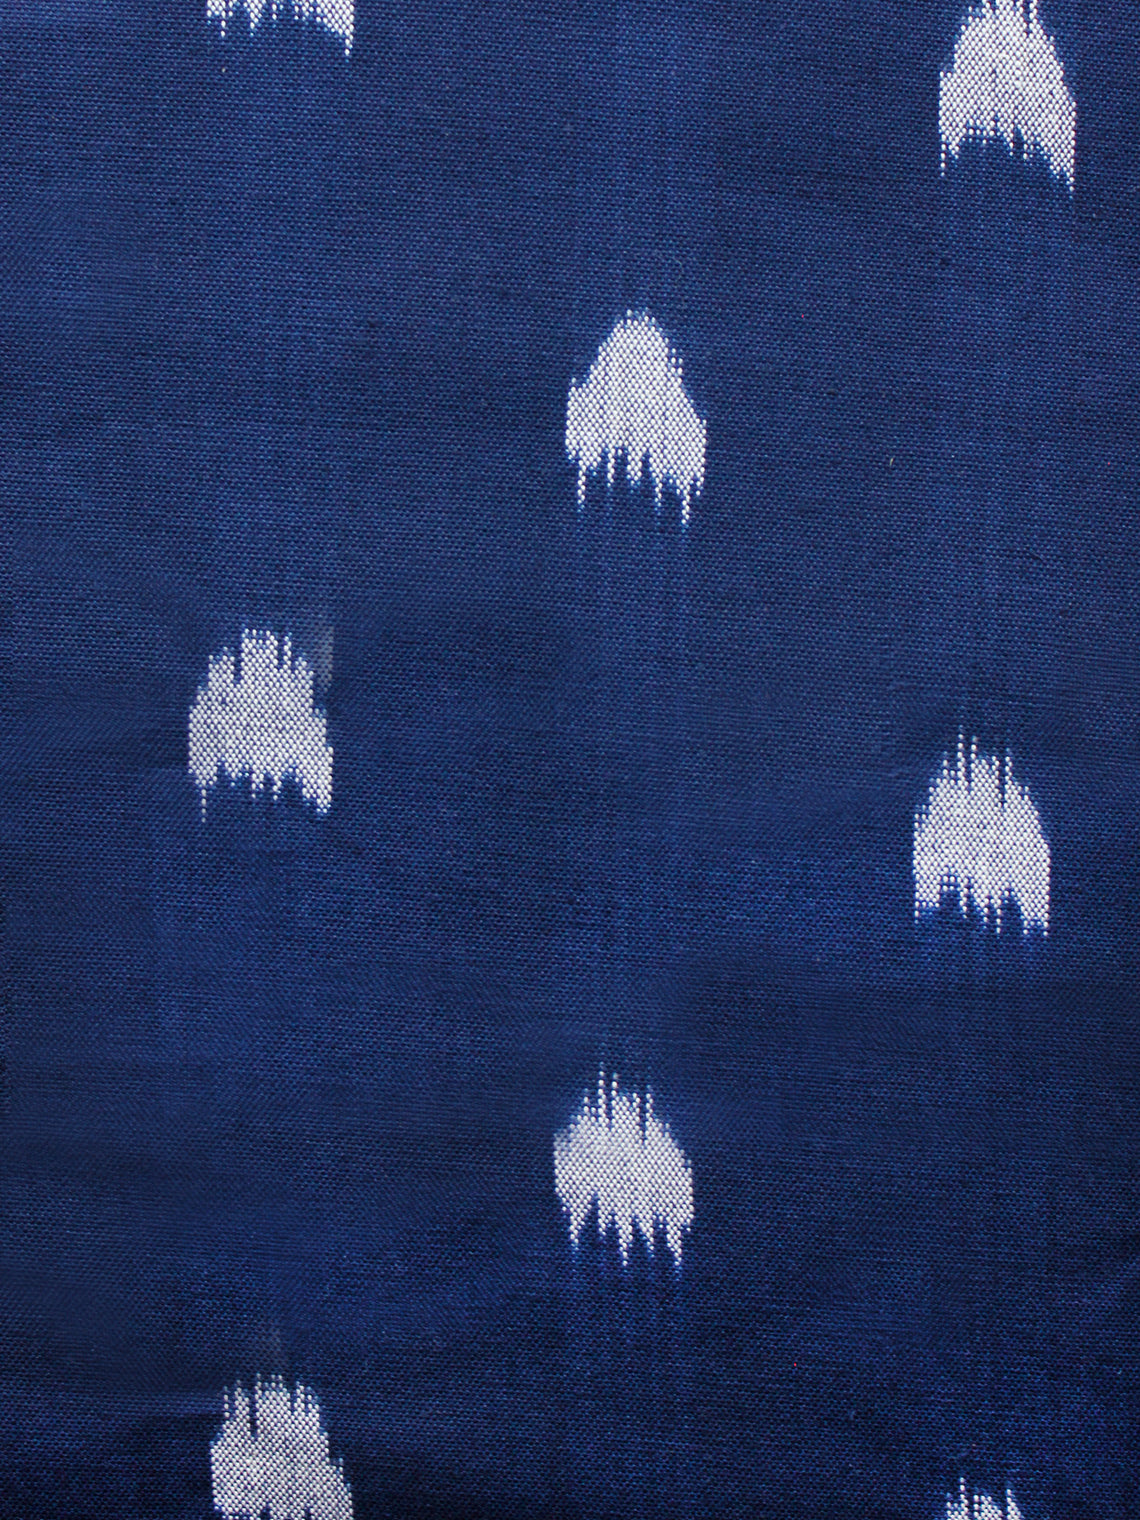 Blue Grey Hand Woven Double Ikat Handloom Cotton Fabric Per Meter - F002F1574